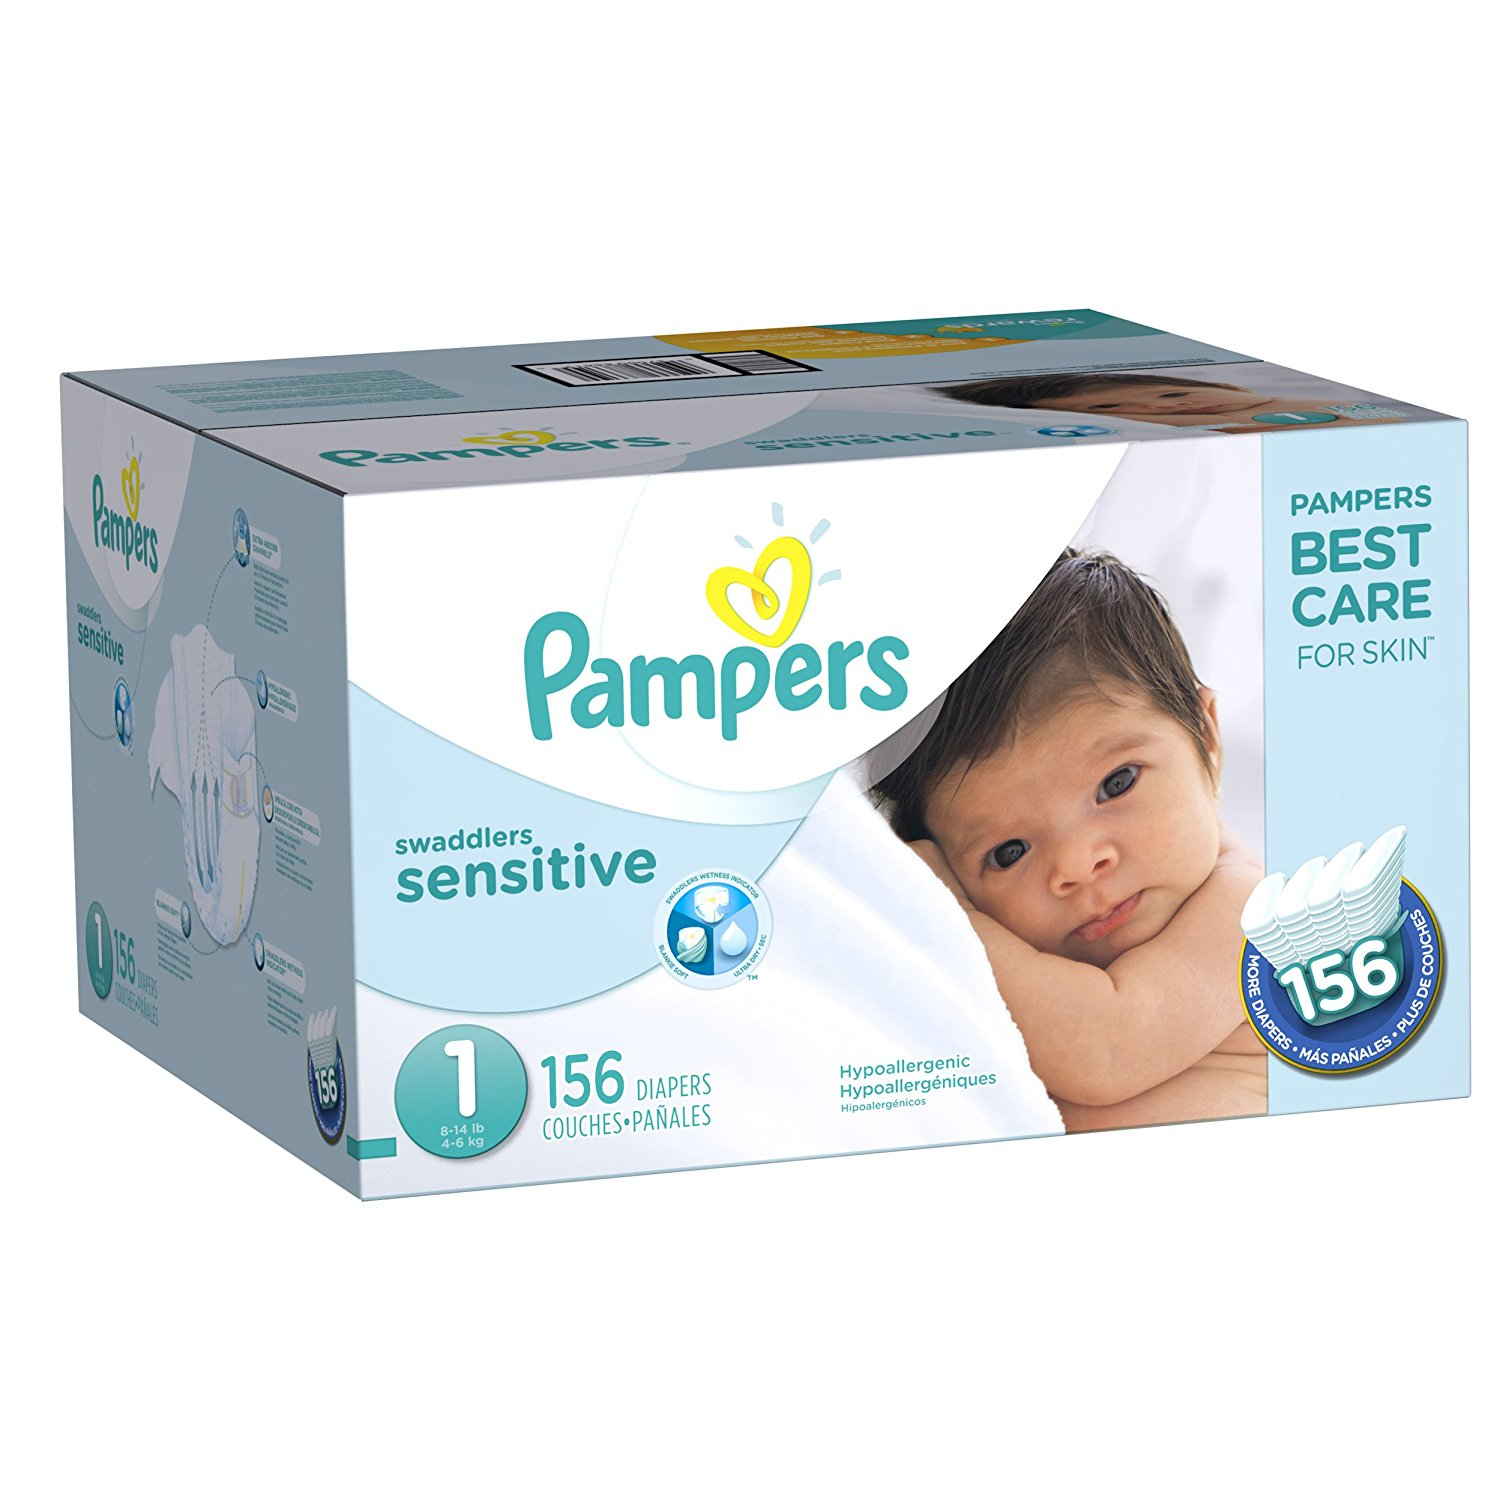 Pampers Swaddlers Sensitive Diapers Size 1 -156 ct. (8-14 lb.) by Unbranded